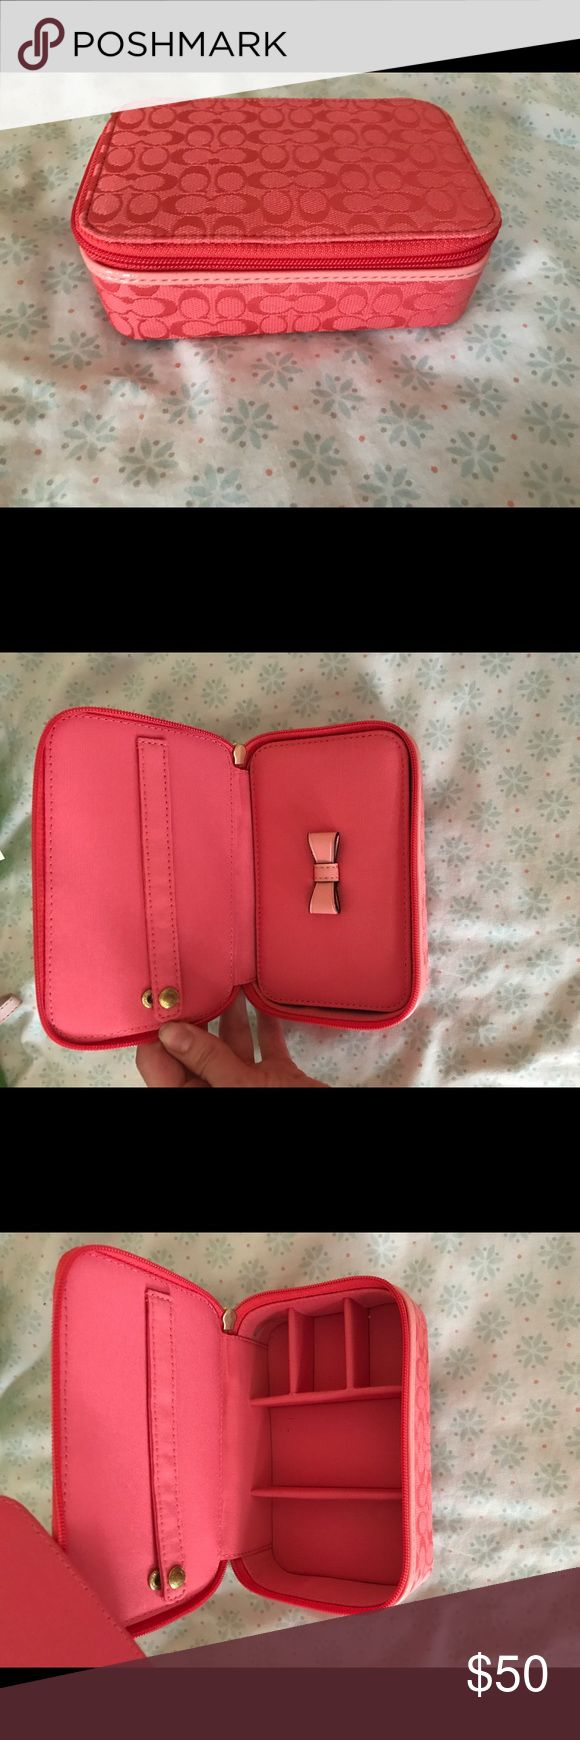 Coach jewelry travel case pink Cute pink Coach jewelry case. Perfect for travel! Only used twice in great condition! Coach Jewelry